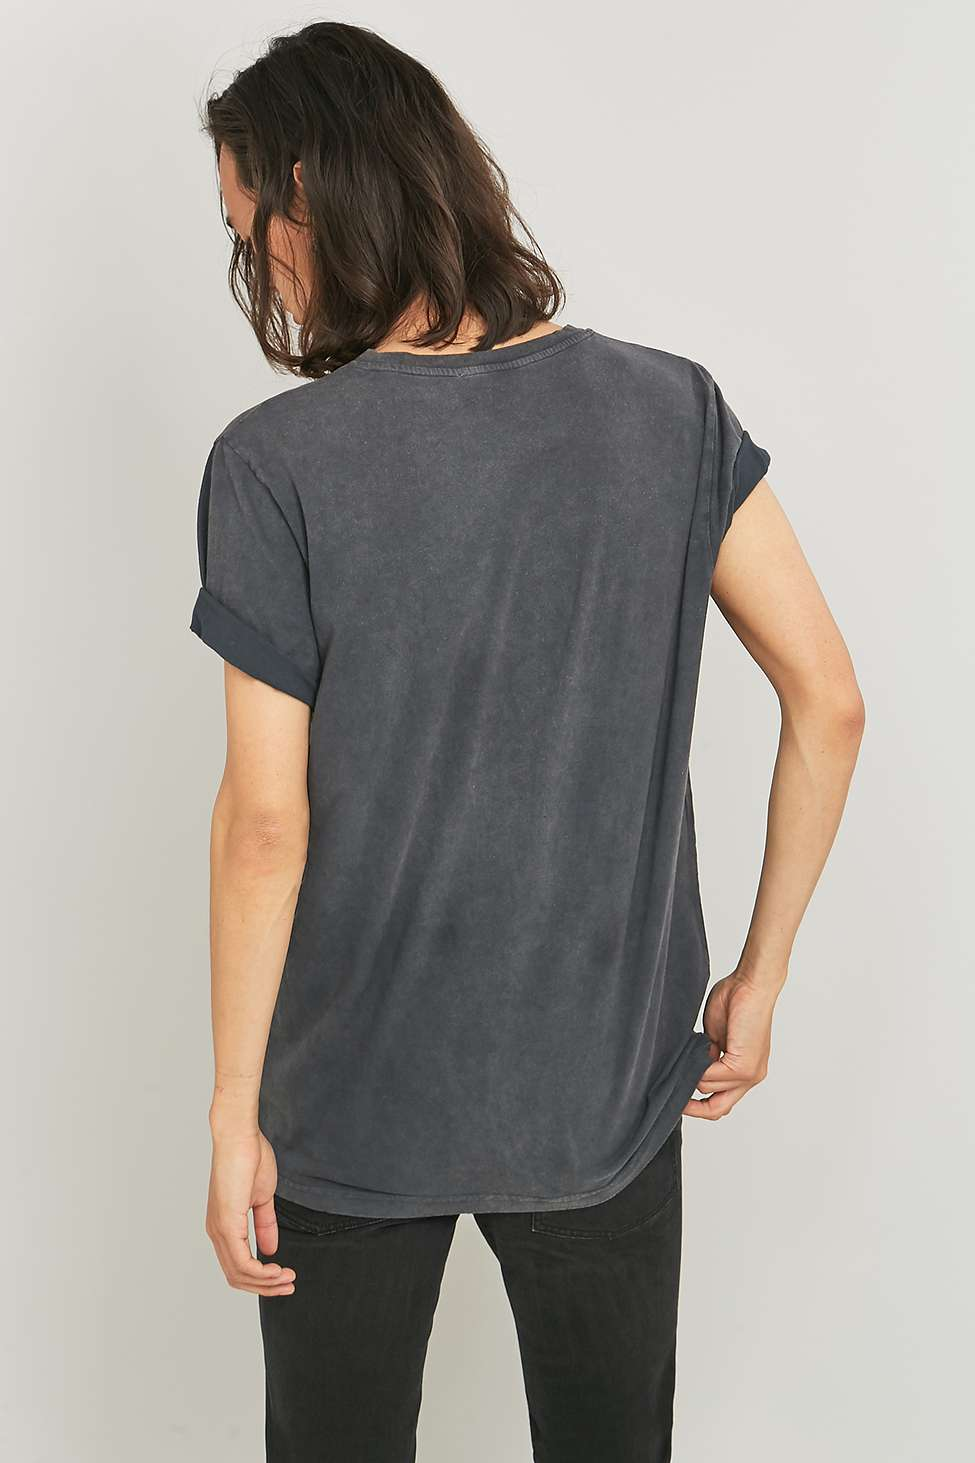 Led Zeppelin Washed Black T-shirt | Urban Outfitters